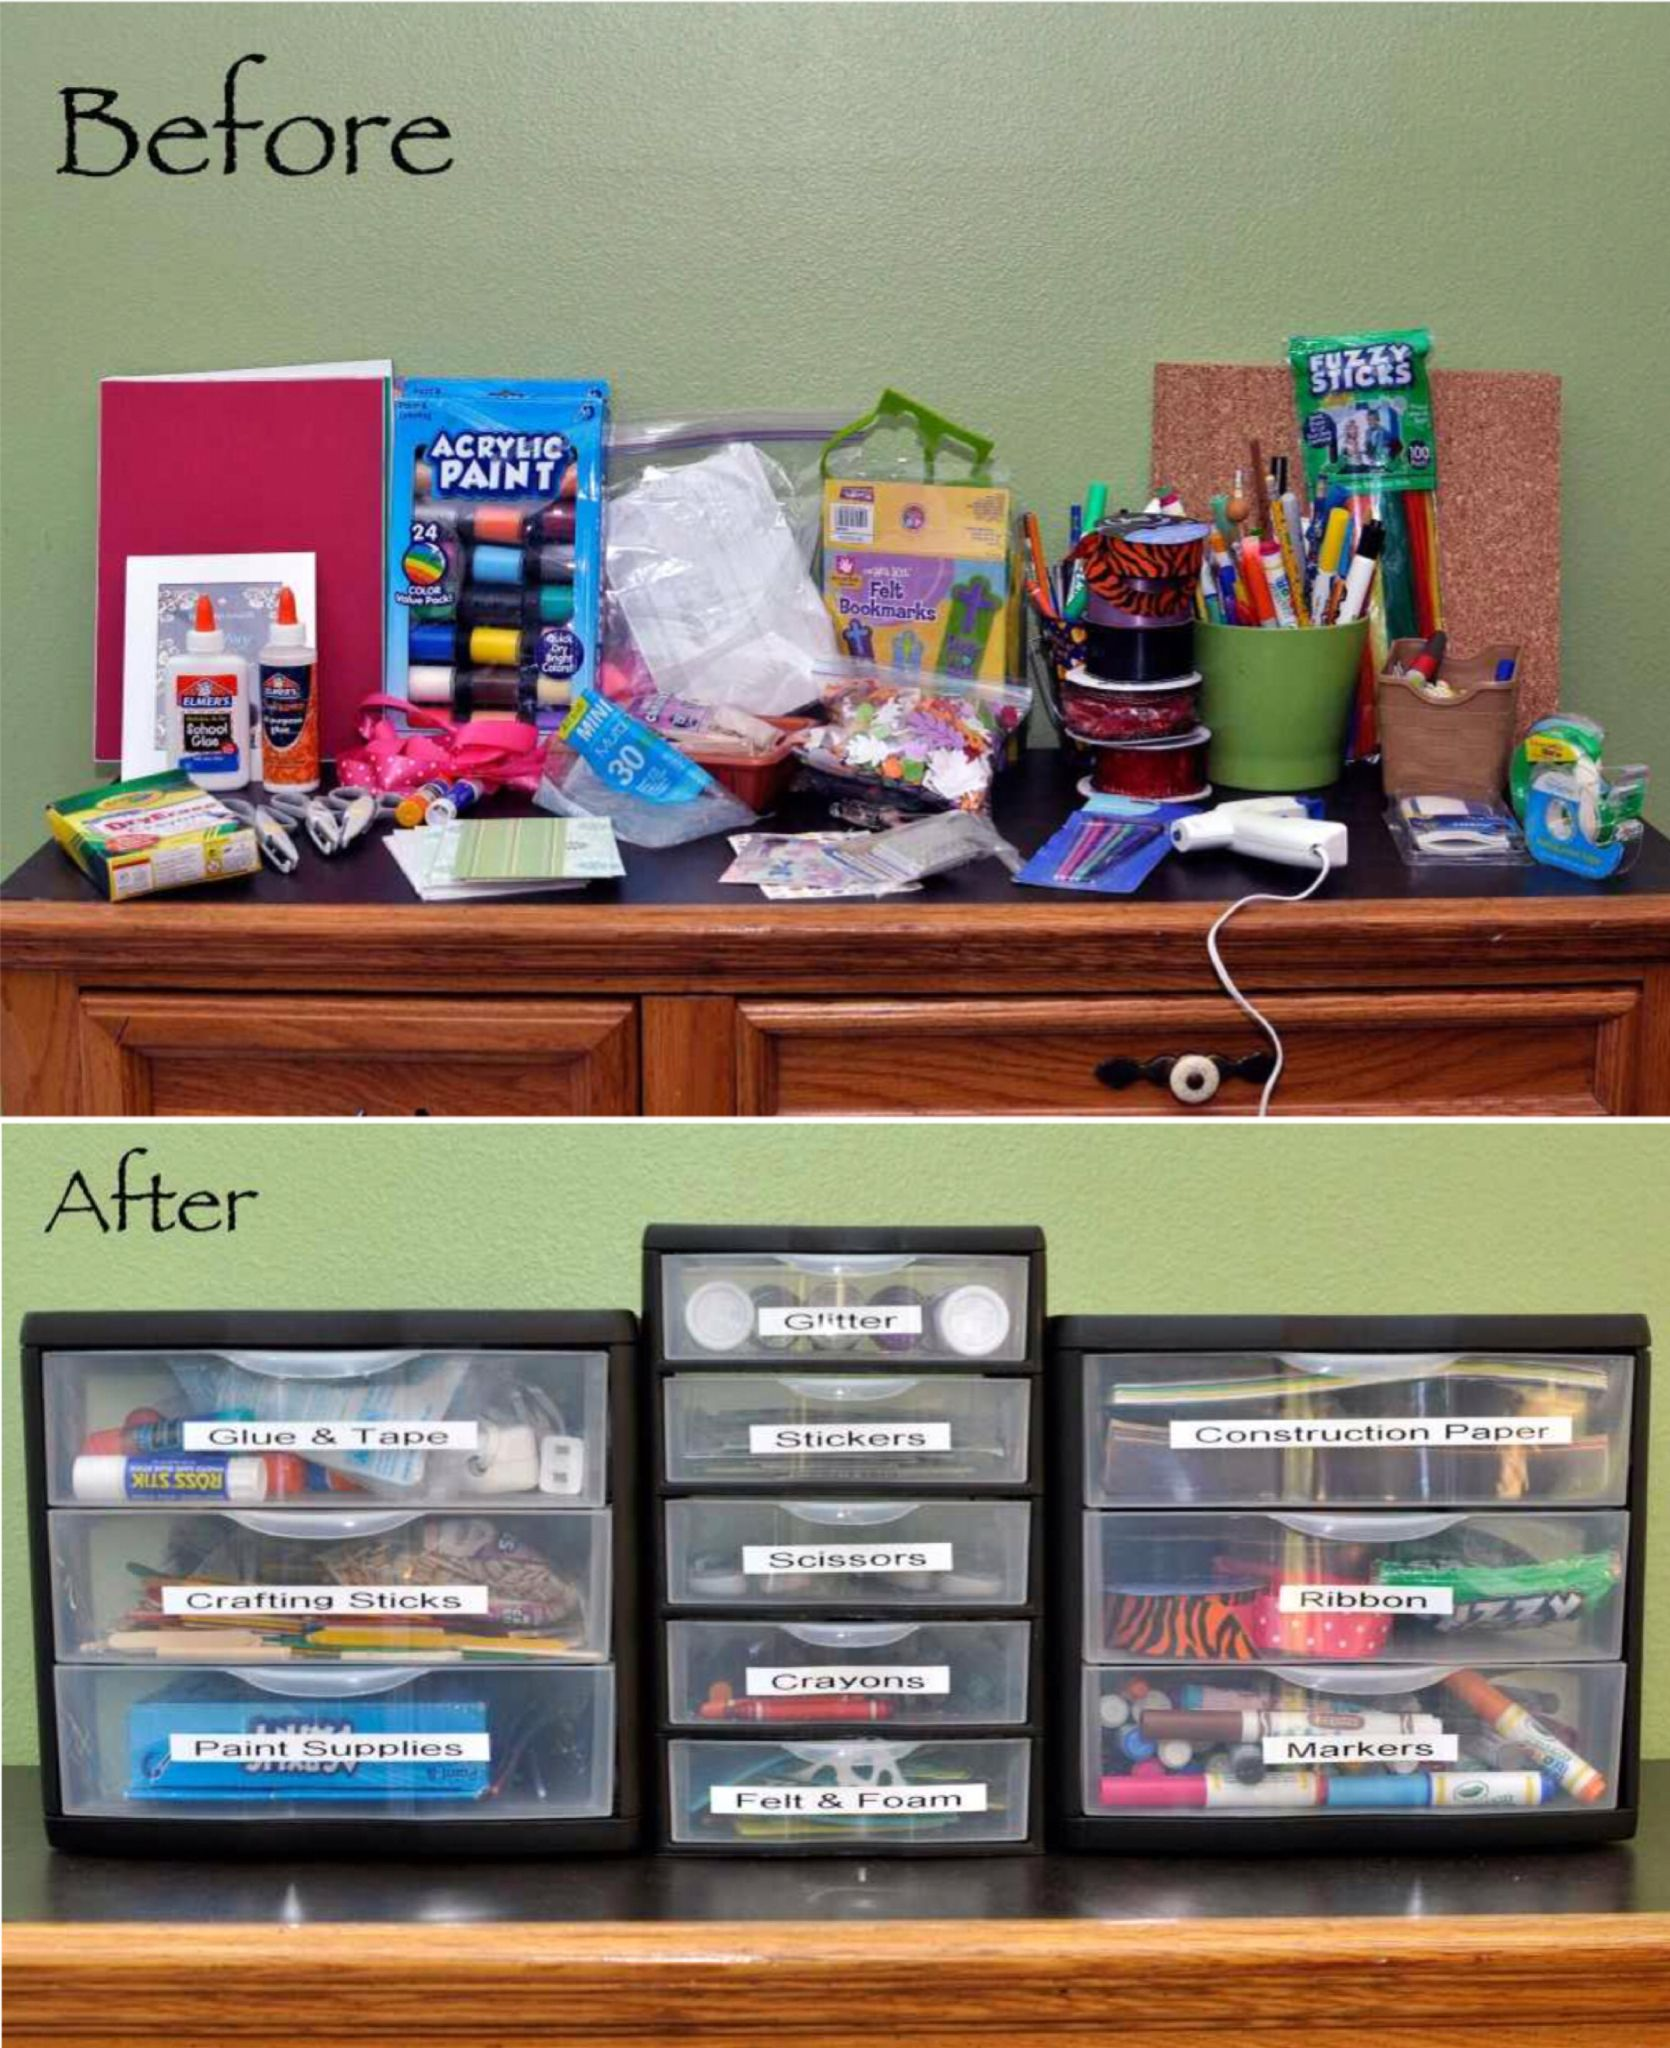 Bedroom Art Supplies: How To Organize Kids' Craft Supplies